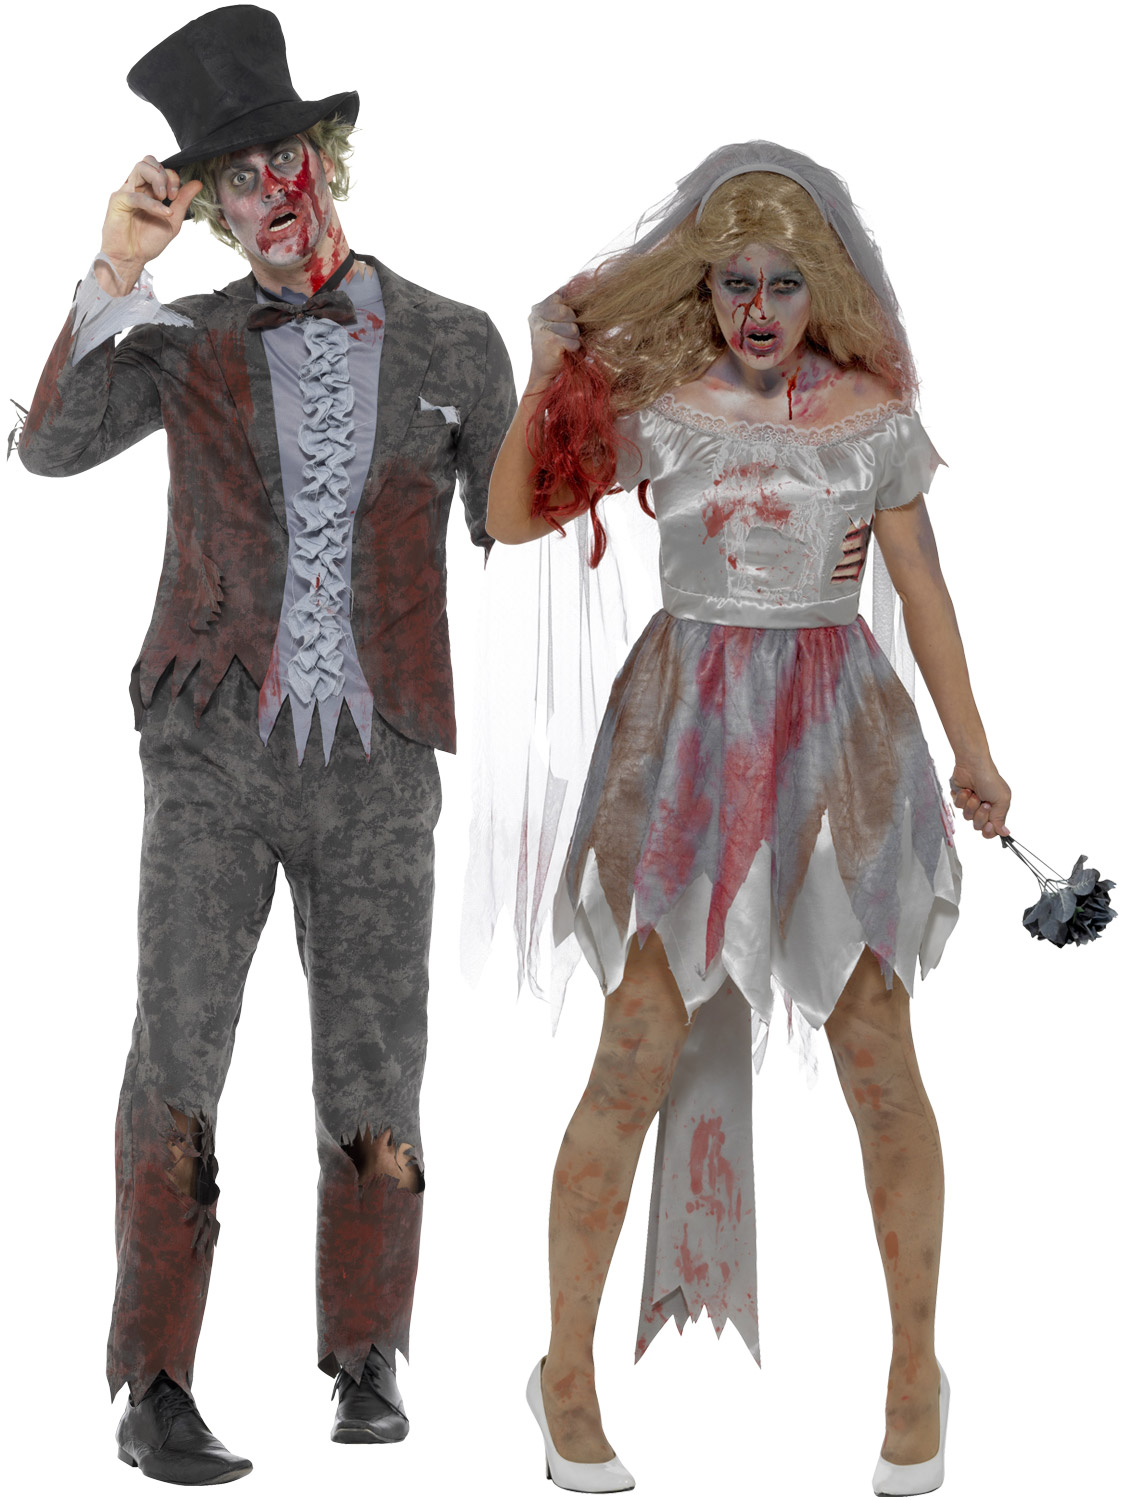 Christmas Zombie Costume.Details About Adult Zombie Bride Groom Costume Mens Ladies Halloween Fancy Dress Outfit Couple